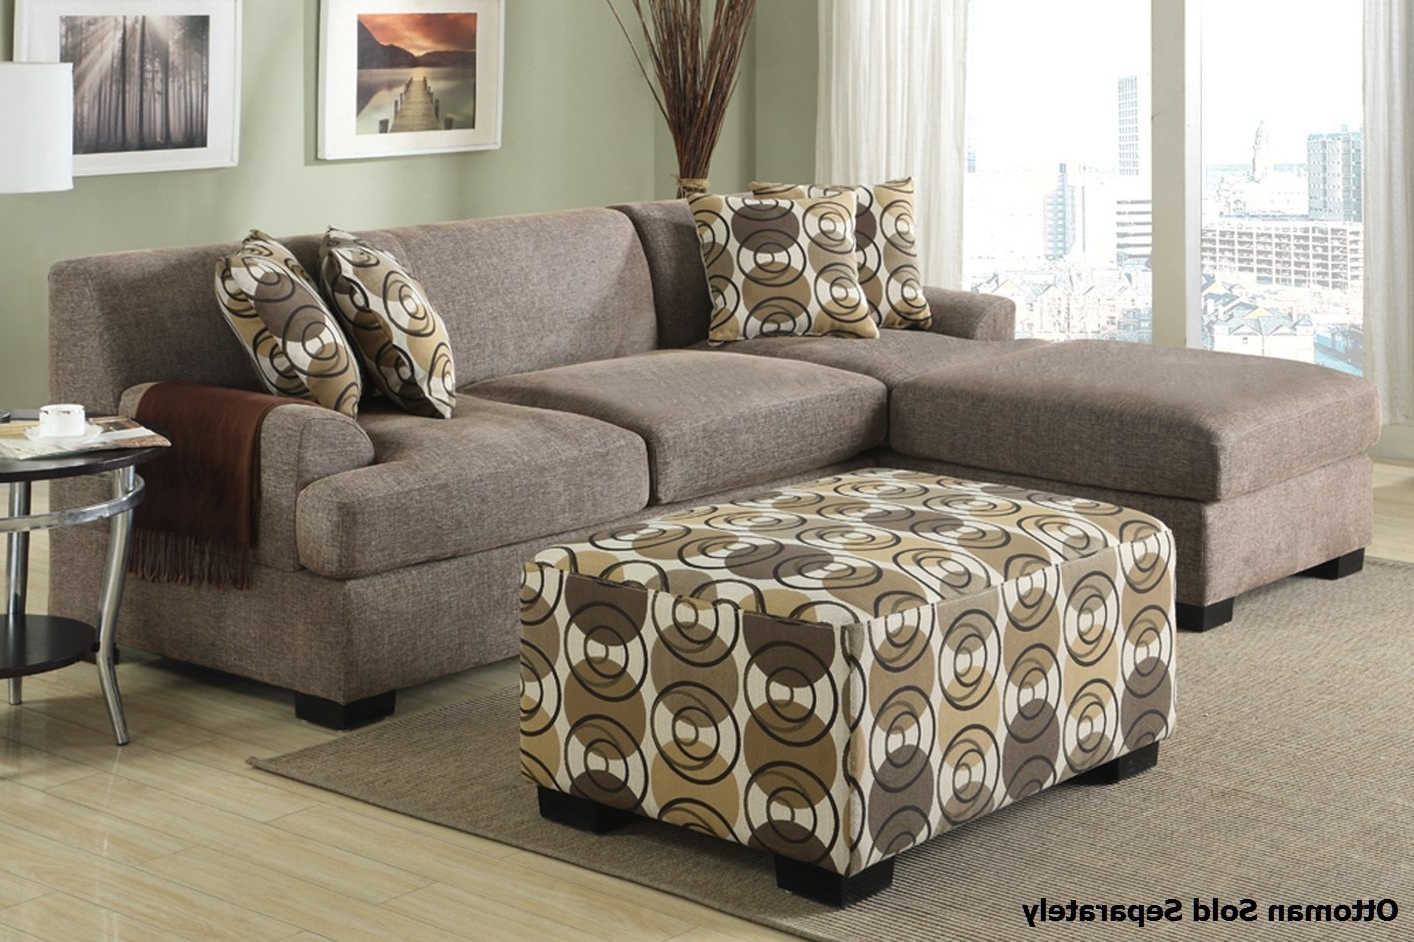 Montreal Ii Beige Fabric Sectional Sofa – Steal A Sofa Furniture With Regard To Trendy Montreal Sectional Sofas (View 5 of 15)